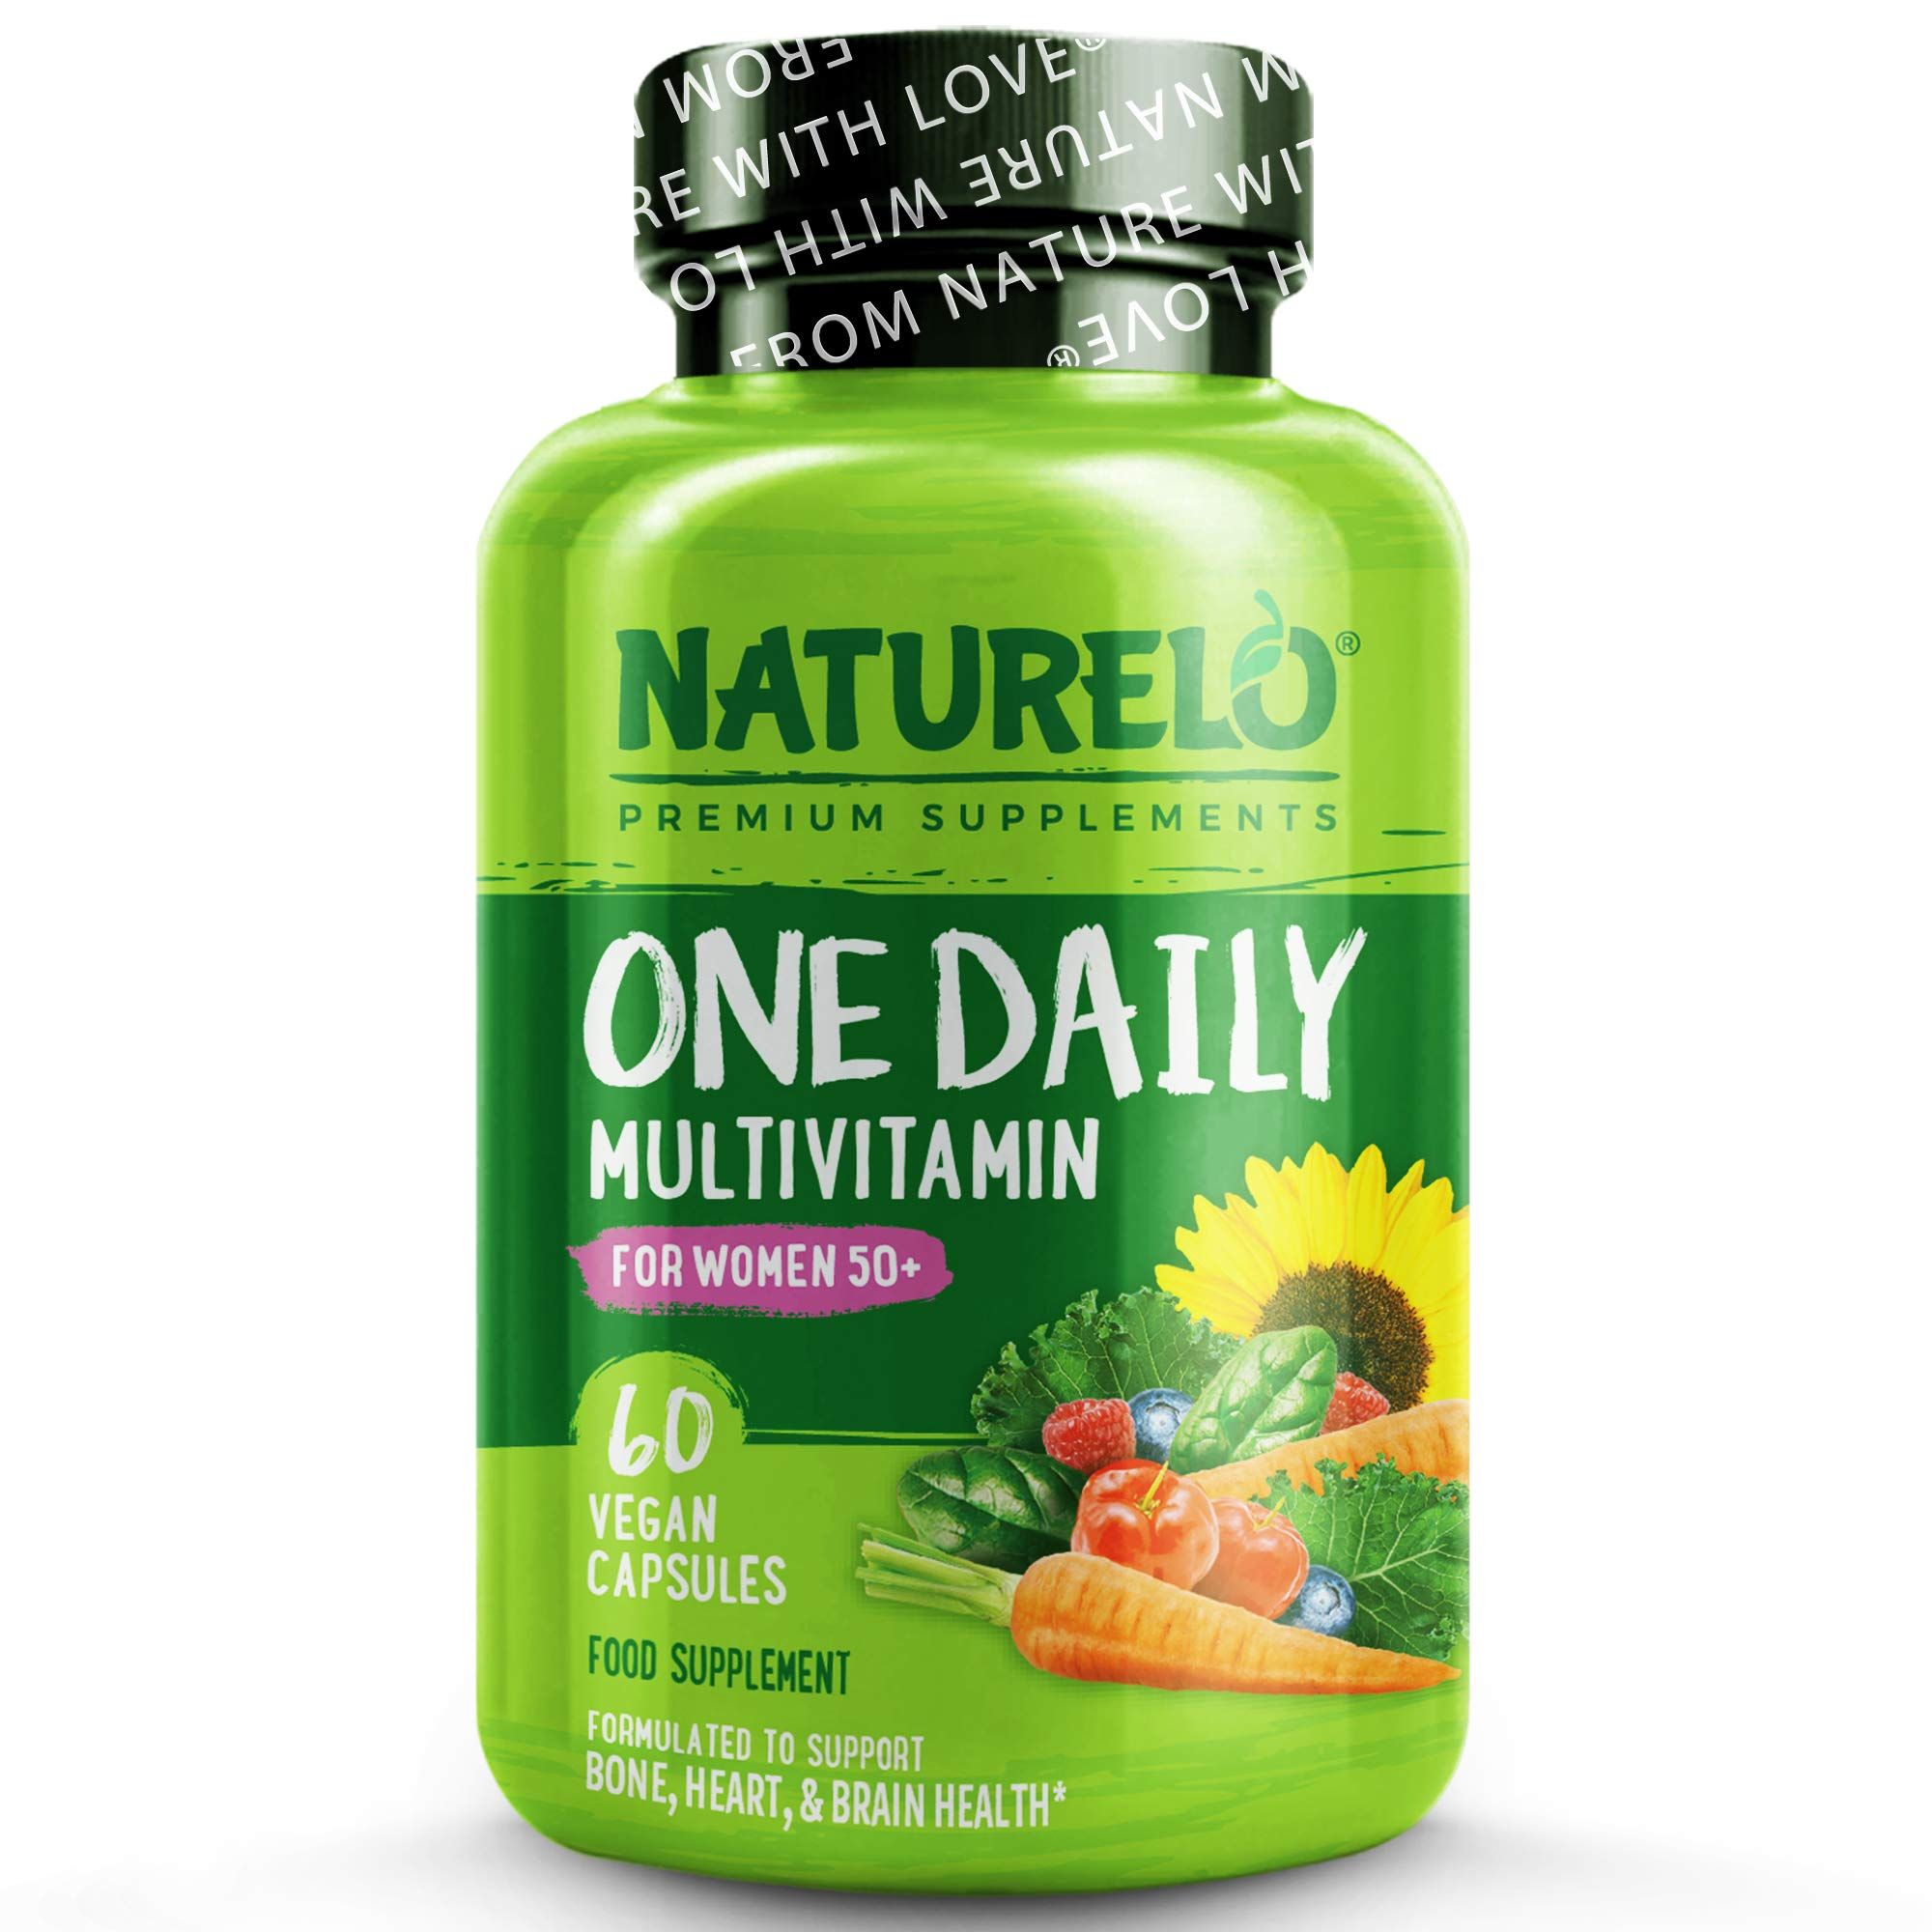 NATURELO One Daily Multivitamin for Women 50+ (Iron-Free) - with Natural Food-Based Vitamins, Fruit & Veg Extracts - Best for Health in Women Over Fifty - Non-GMO - 60 Vegan Capsules | 2 Month Supply